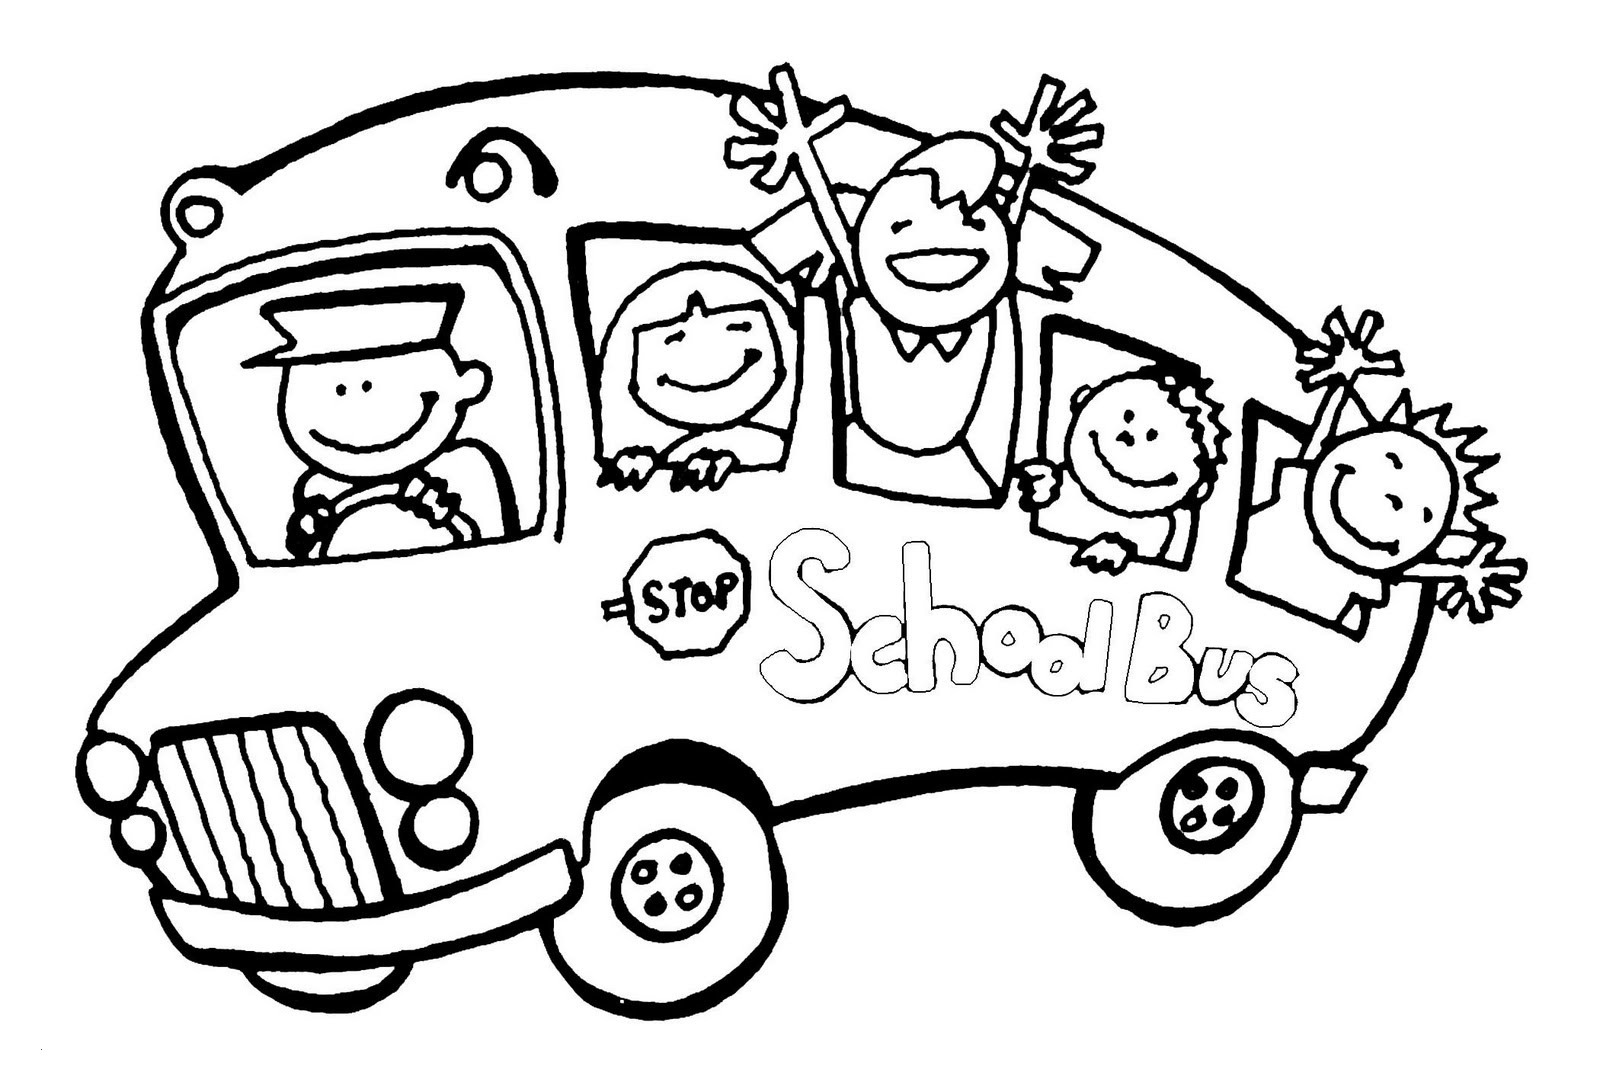 School Bus Coloring Pages Printable  Gallery 6k - Free Download